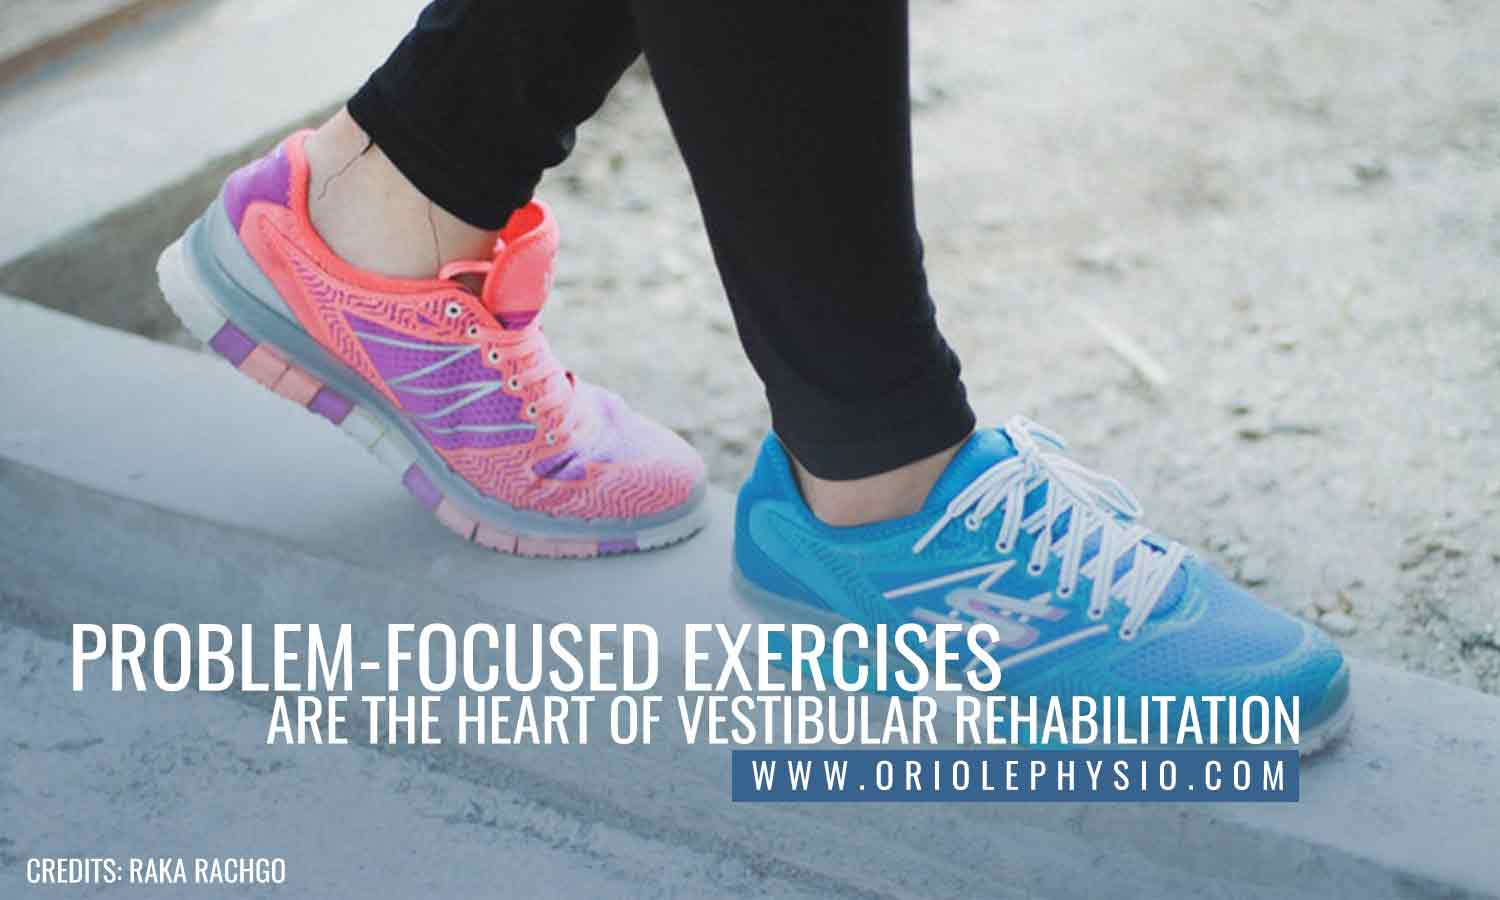 Problem-focused exercises are the heart of vestibular rehabilitation